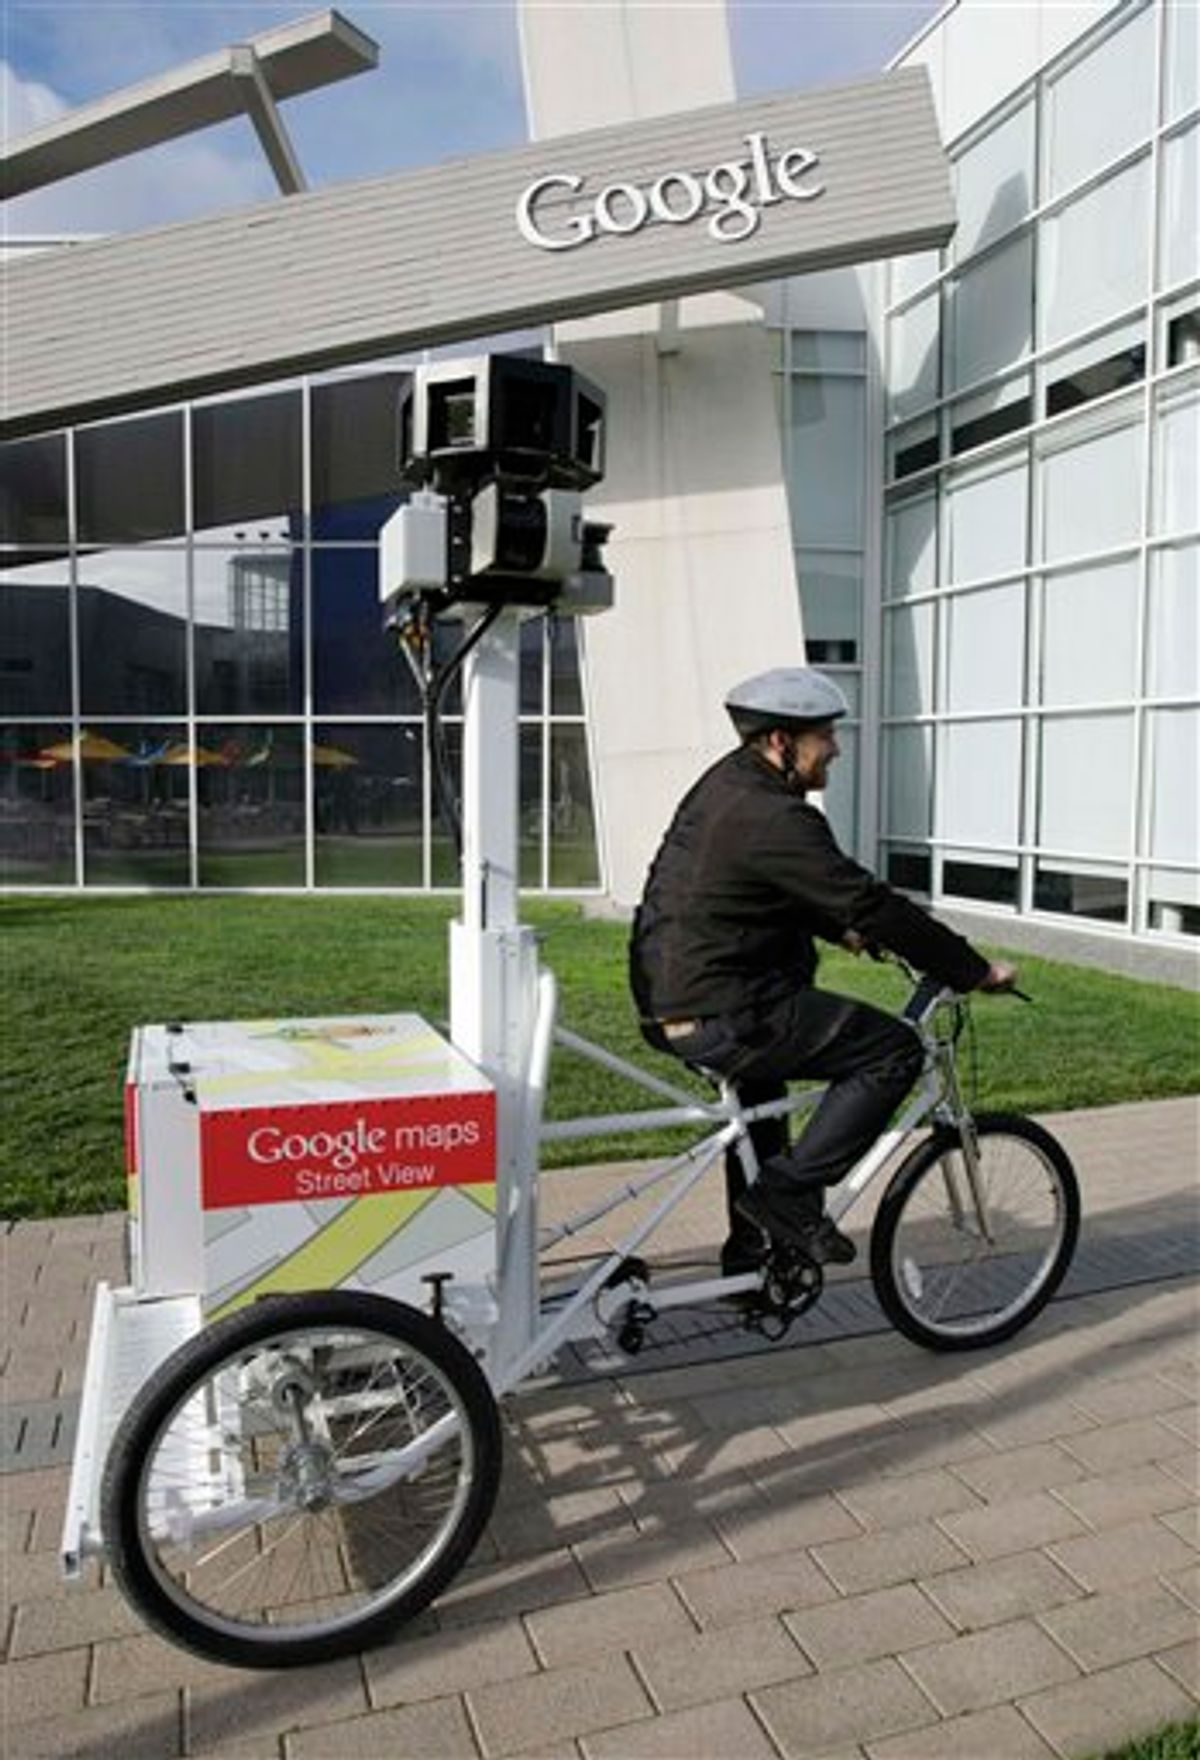 In this photo taken March 7, 2011, Matt Potter of Google pedals Goggle's new Street View Tricycle at Google headquarters in Mountain View, Calif. France's privacy watchdog has handed down its largest fine ever against Google Monday, March 21, 2011, for improperly gathering and storing potentially sensitive data from Wi-Fi networks for its Street View application. (AP Photo/Paul Sakuma) (AP)